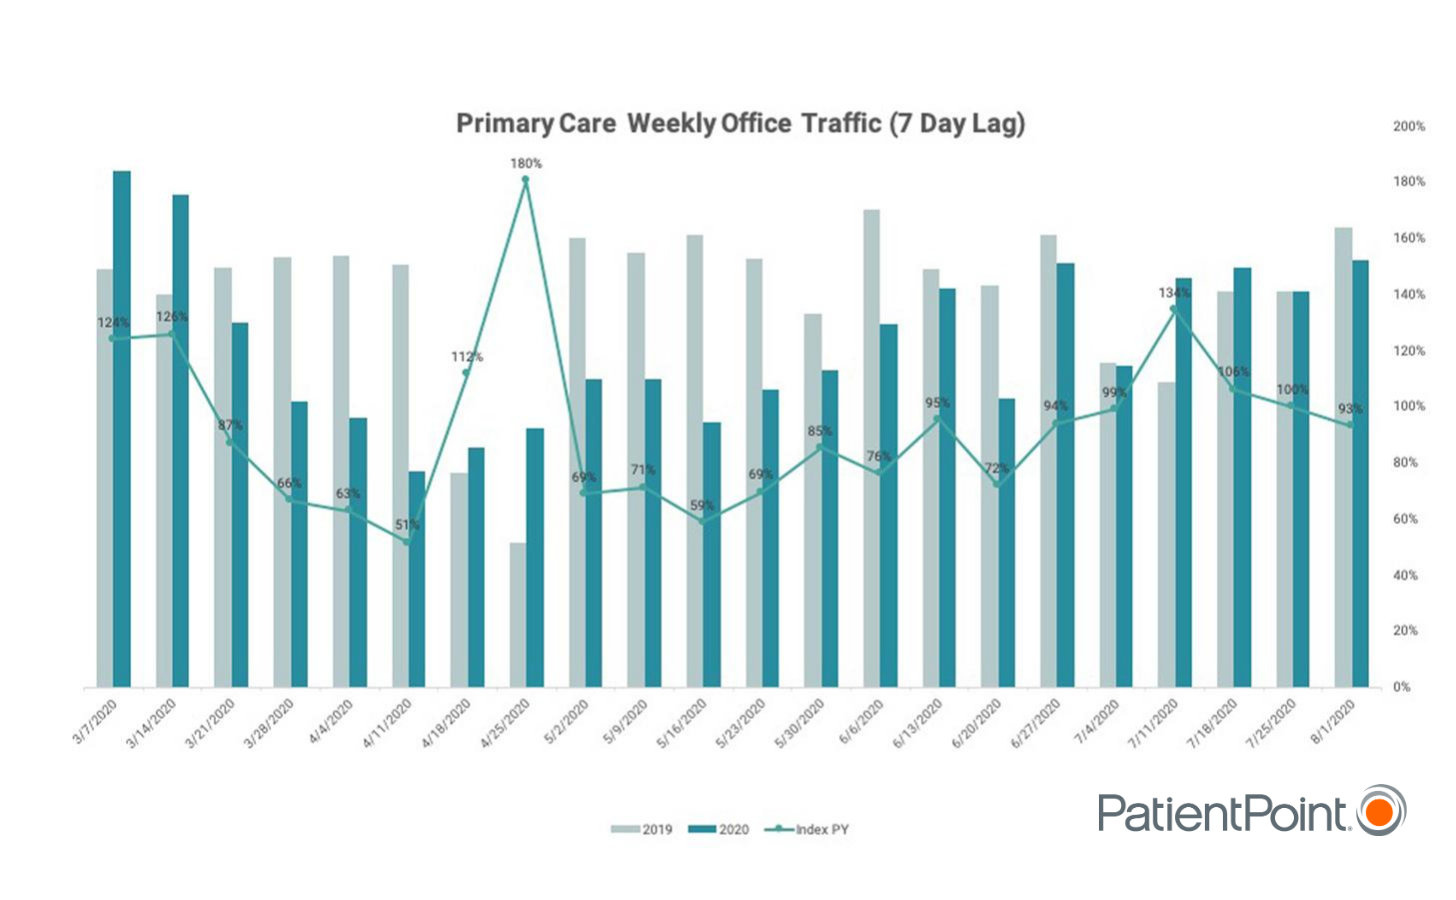 A graph reflecting recent patient traffic data to physician offices that underscores that patients are continuing to return to the doctor's office.